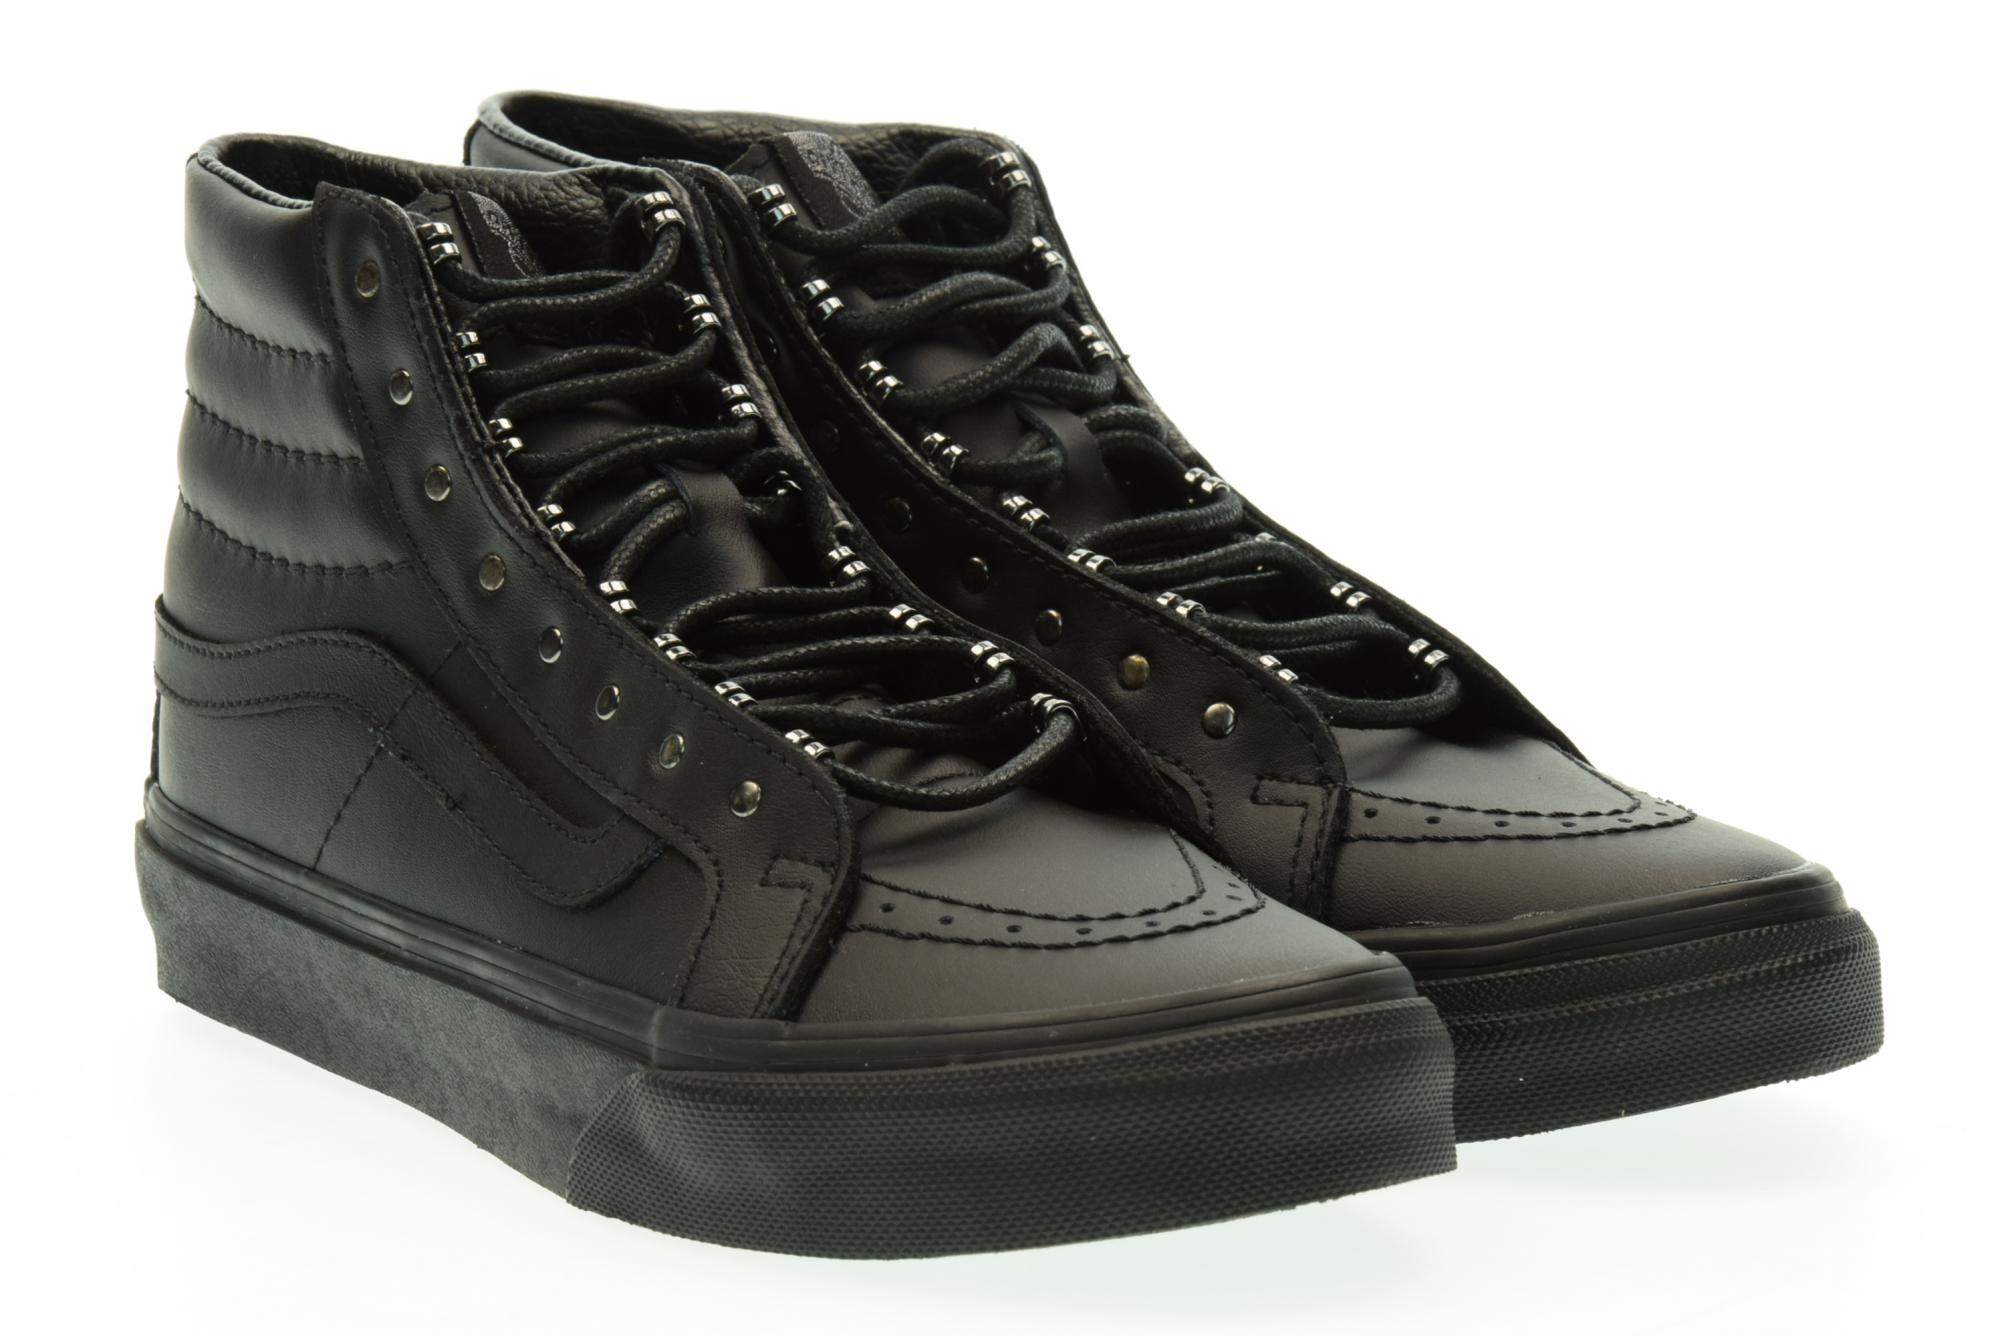 Vans Baskets Unisexes Haute 18IJV1 SK8-HI Slim (Rivets) 41 Nero